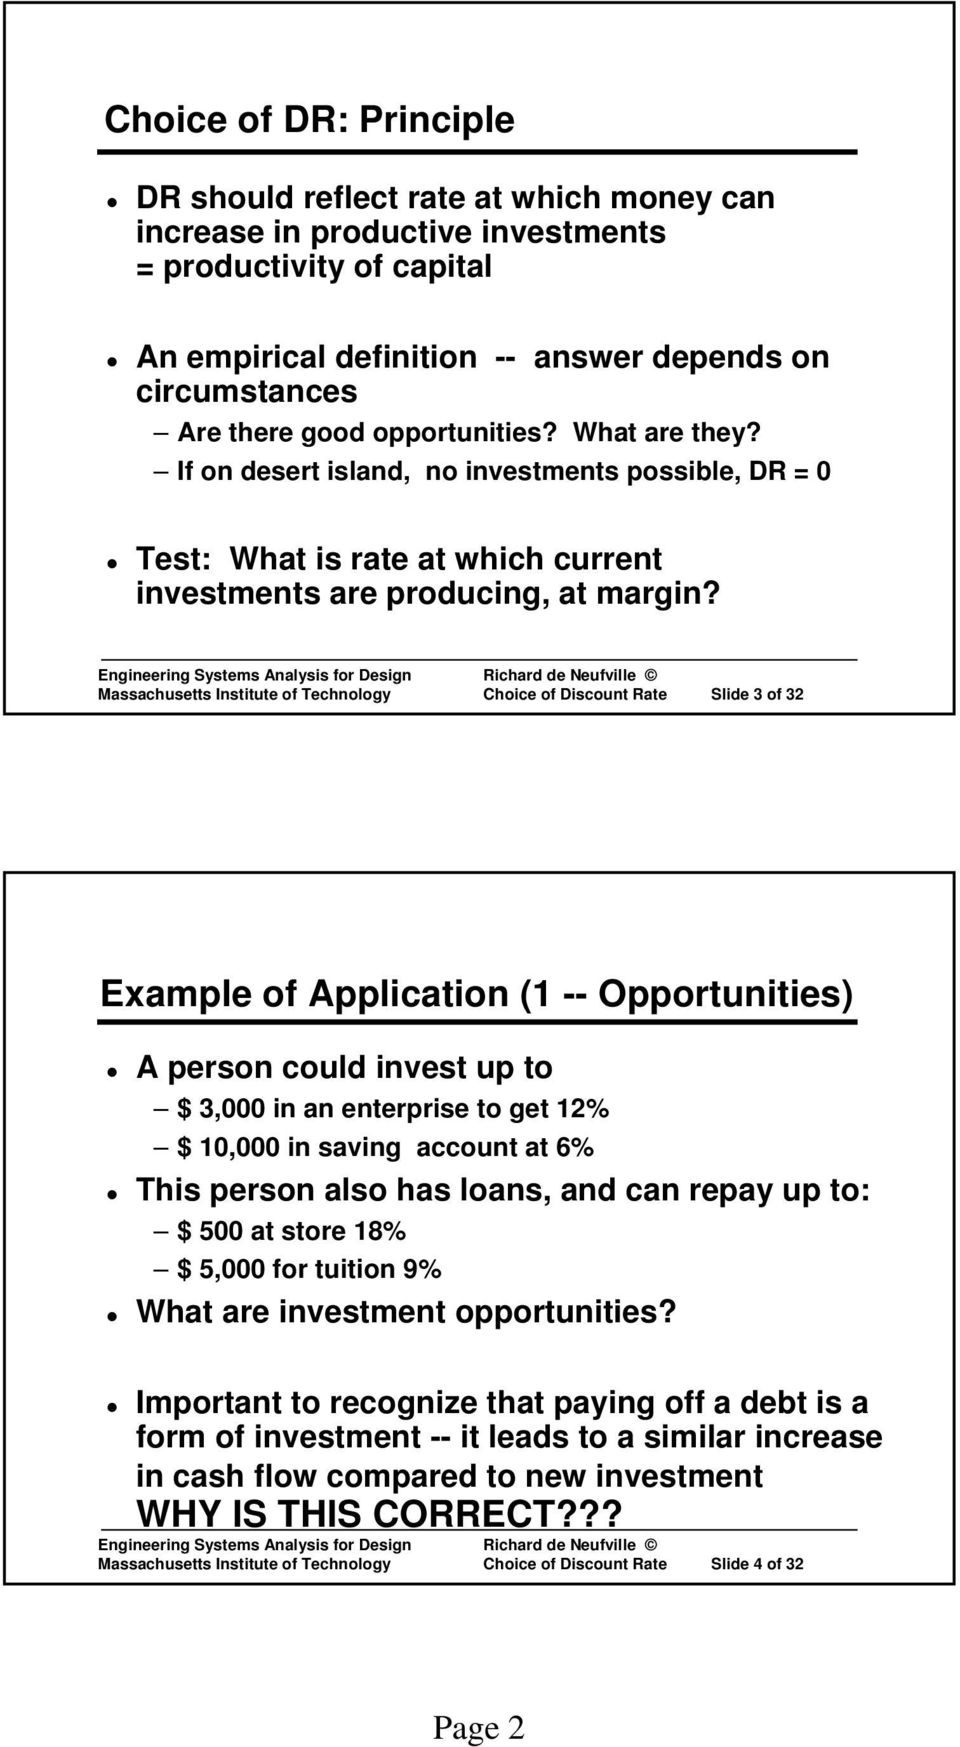 Massachusetts Institute of Technology Choice of Discount Rate Slide 3 of 32 Example of Application (1 -- Opportunities) A person could invest up to $ 3,000 in an enterprise to get 12% $ 10,000 in